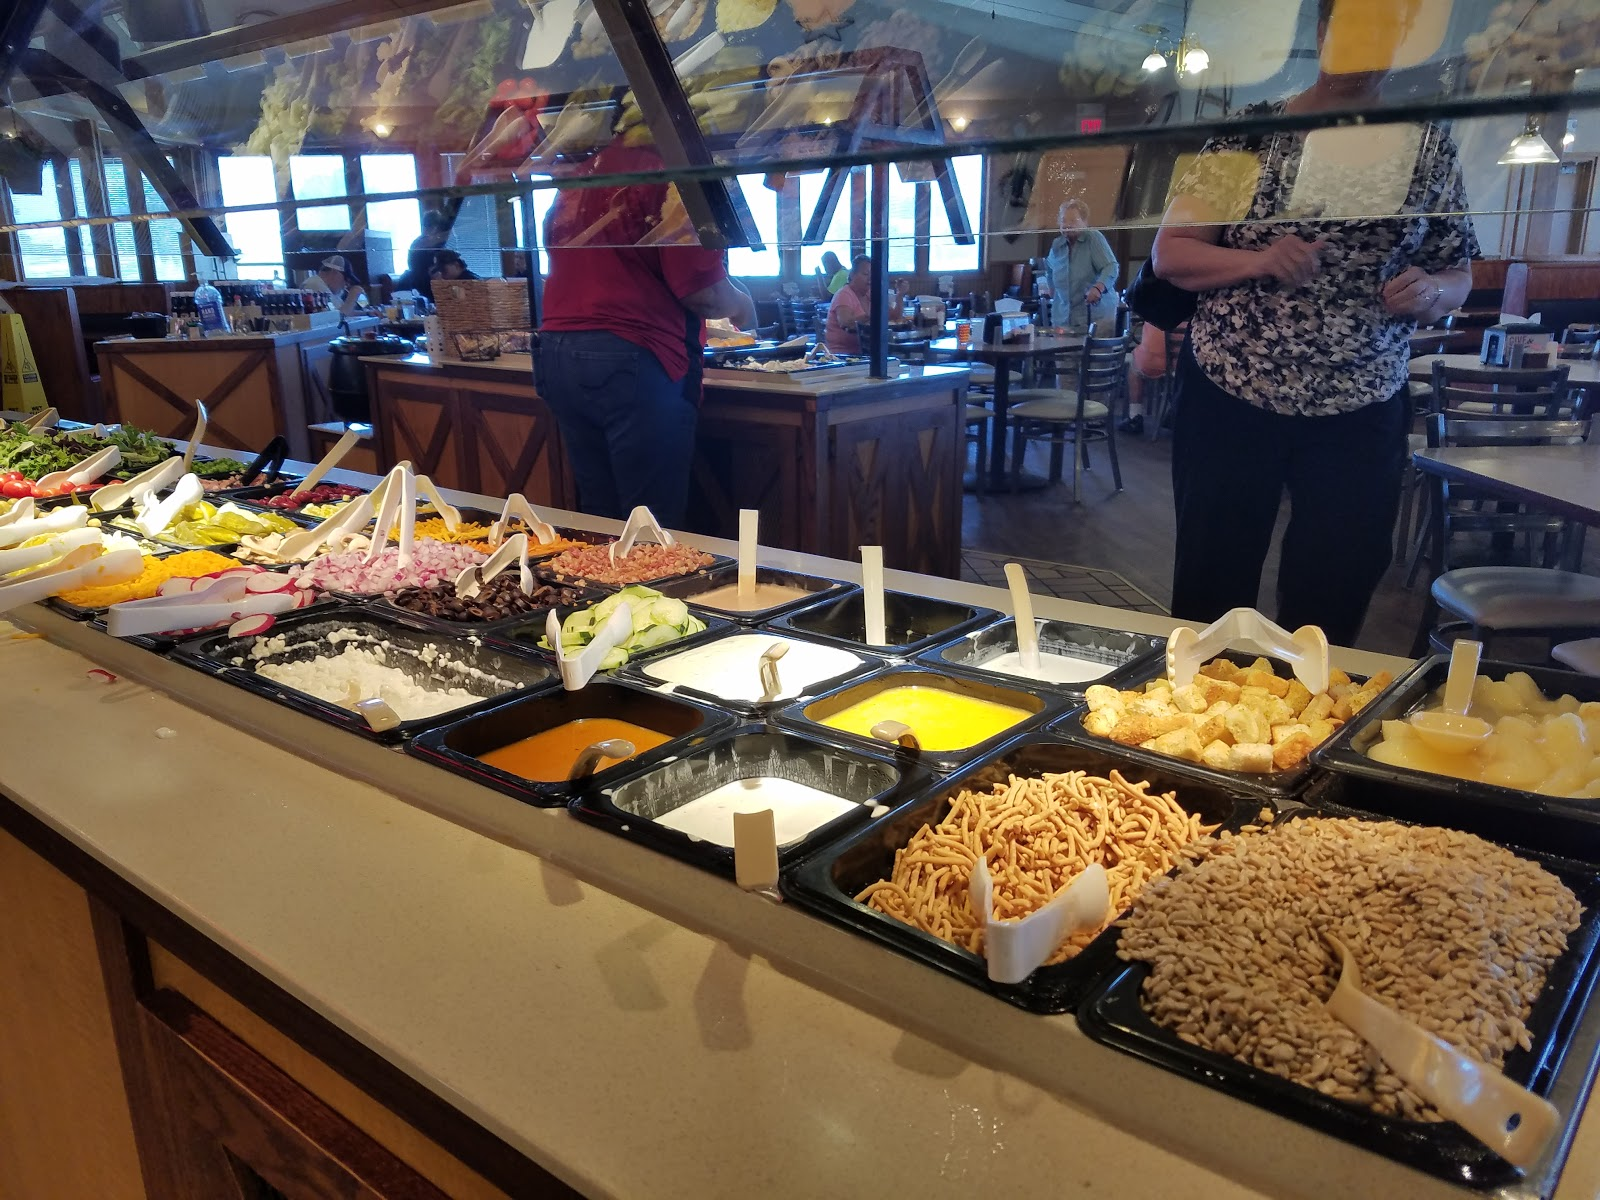 TRAVEL SALINE COUNTY KANSAS: Kansas Buffet in Salina KS